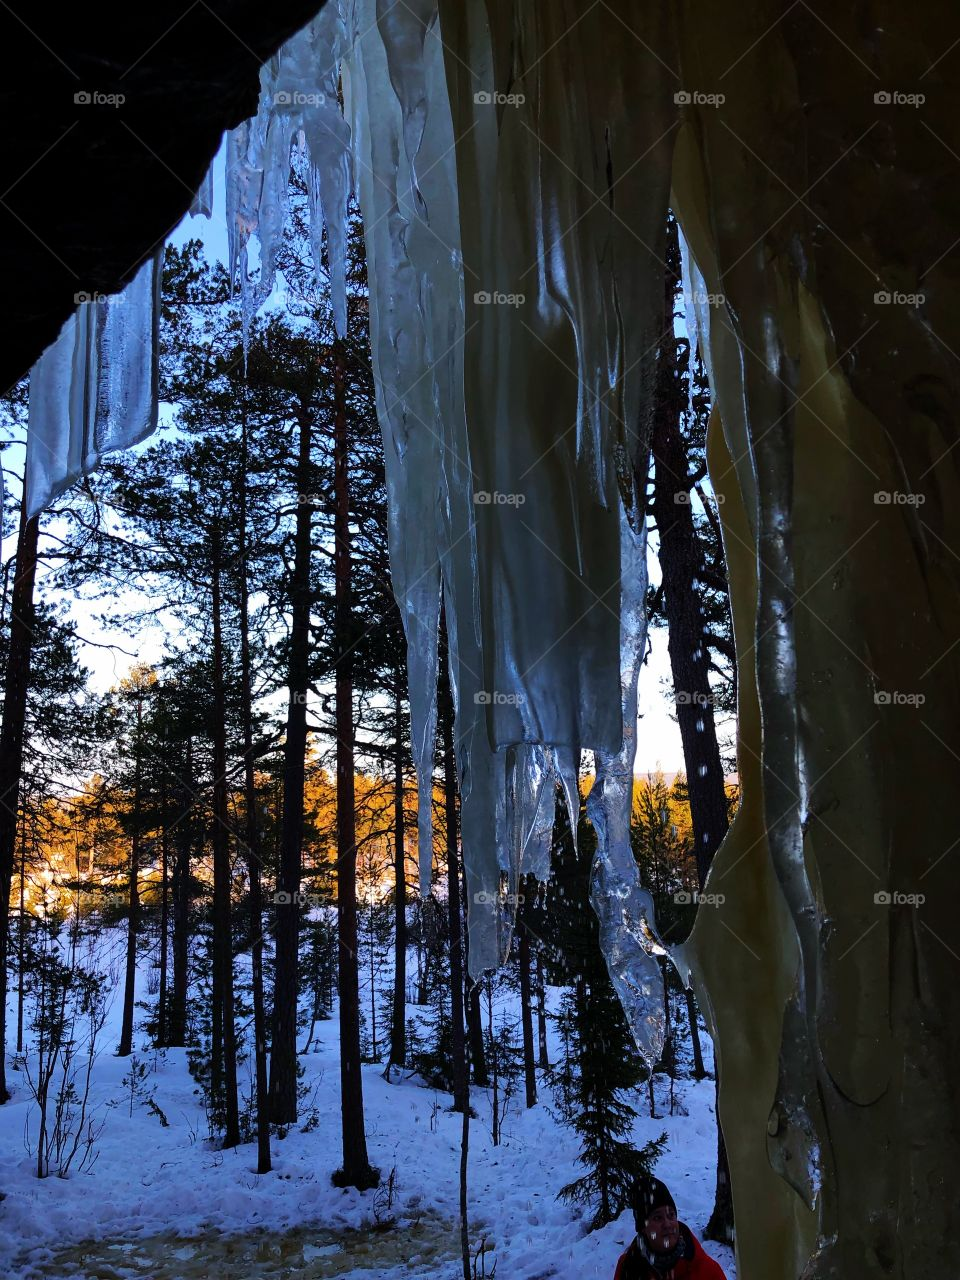 Ice in the Woods